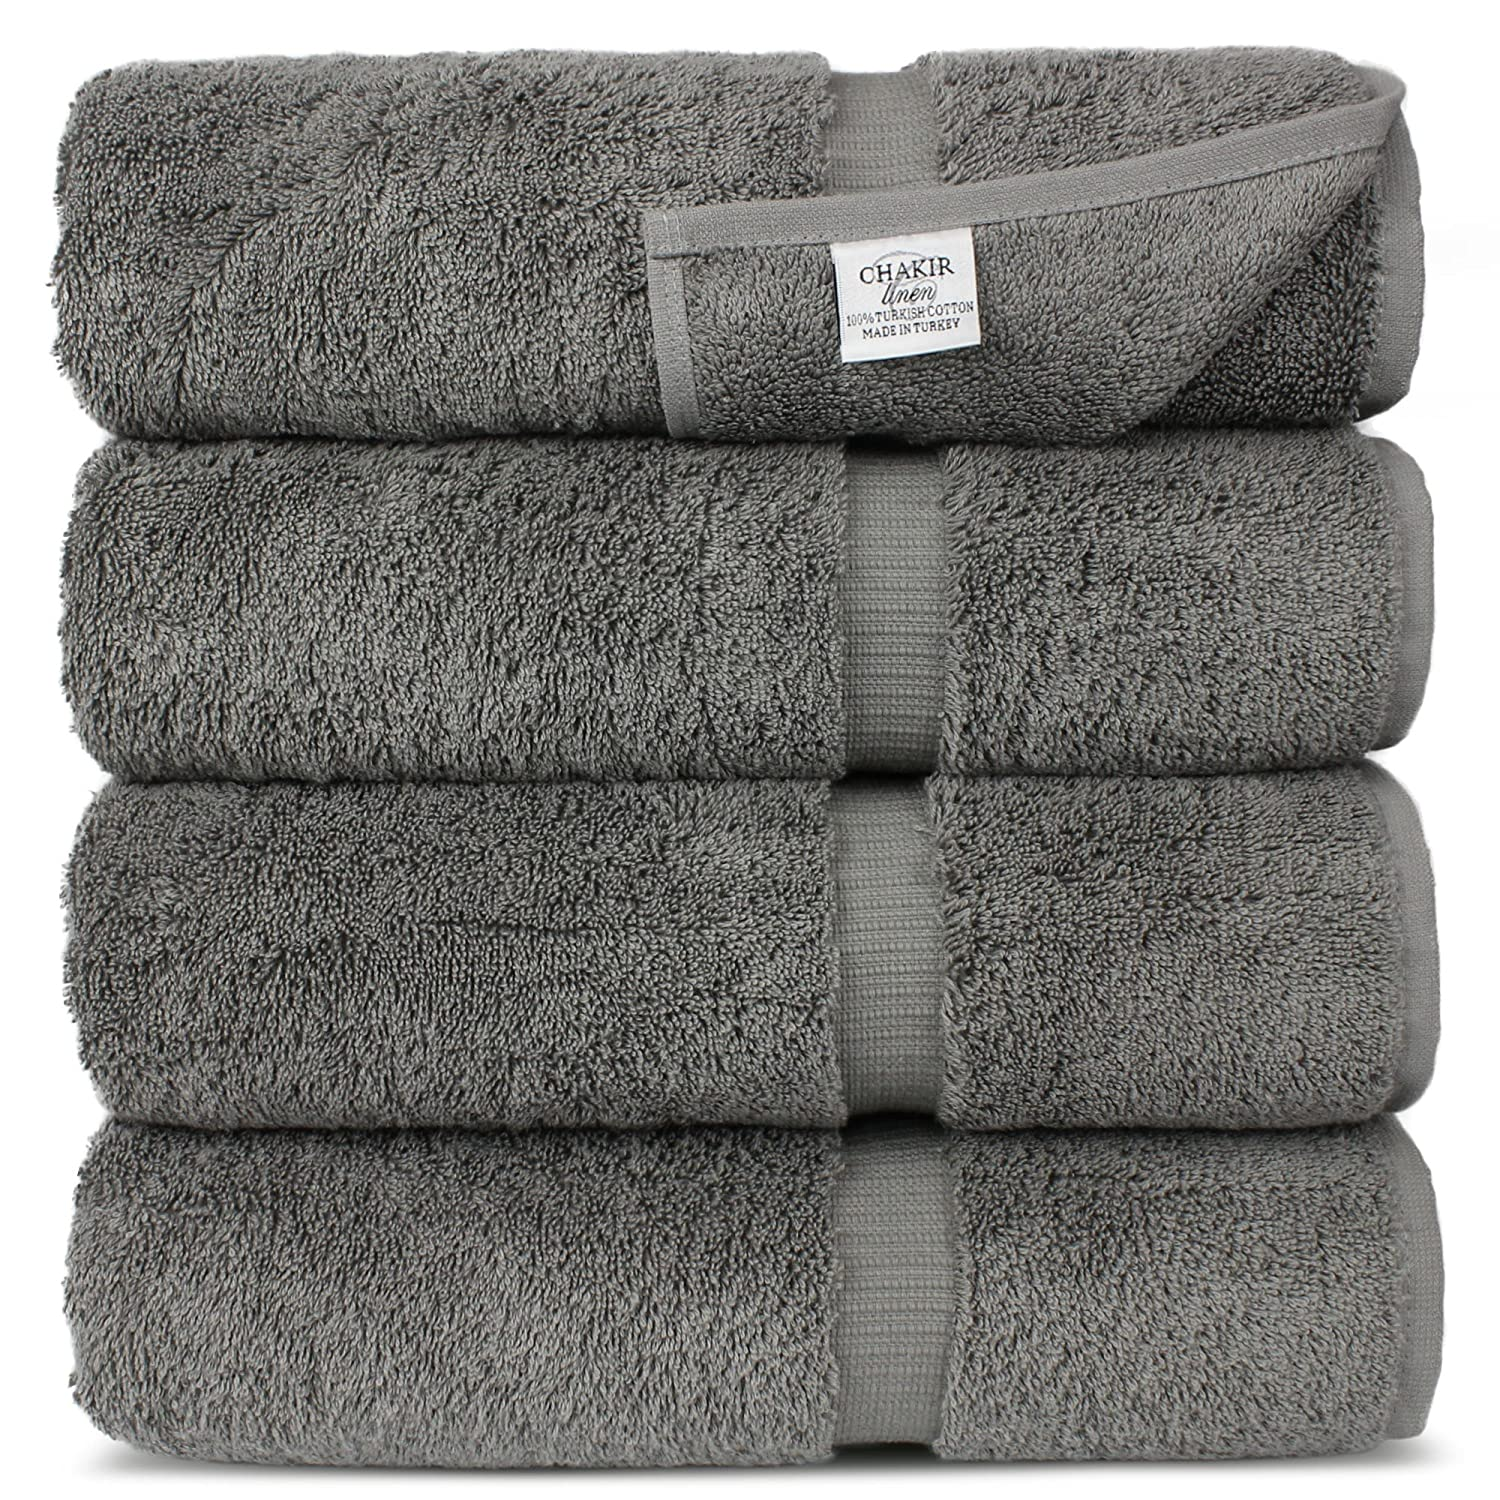 Chakir Linens - Luxury Hotel and Spa Towels